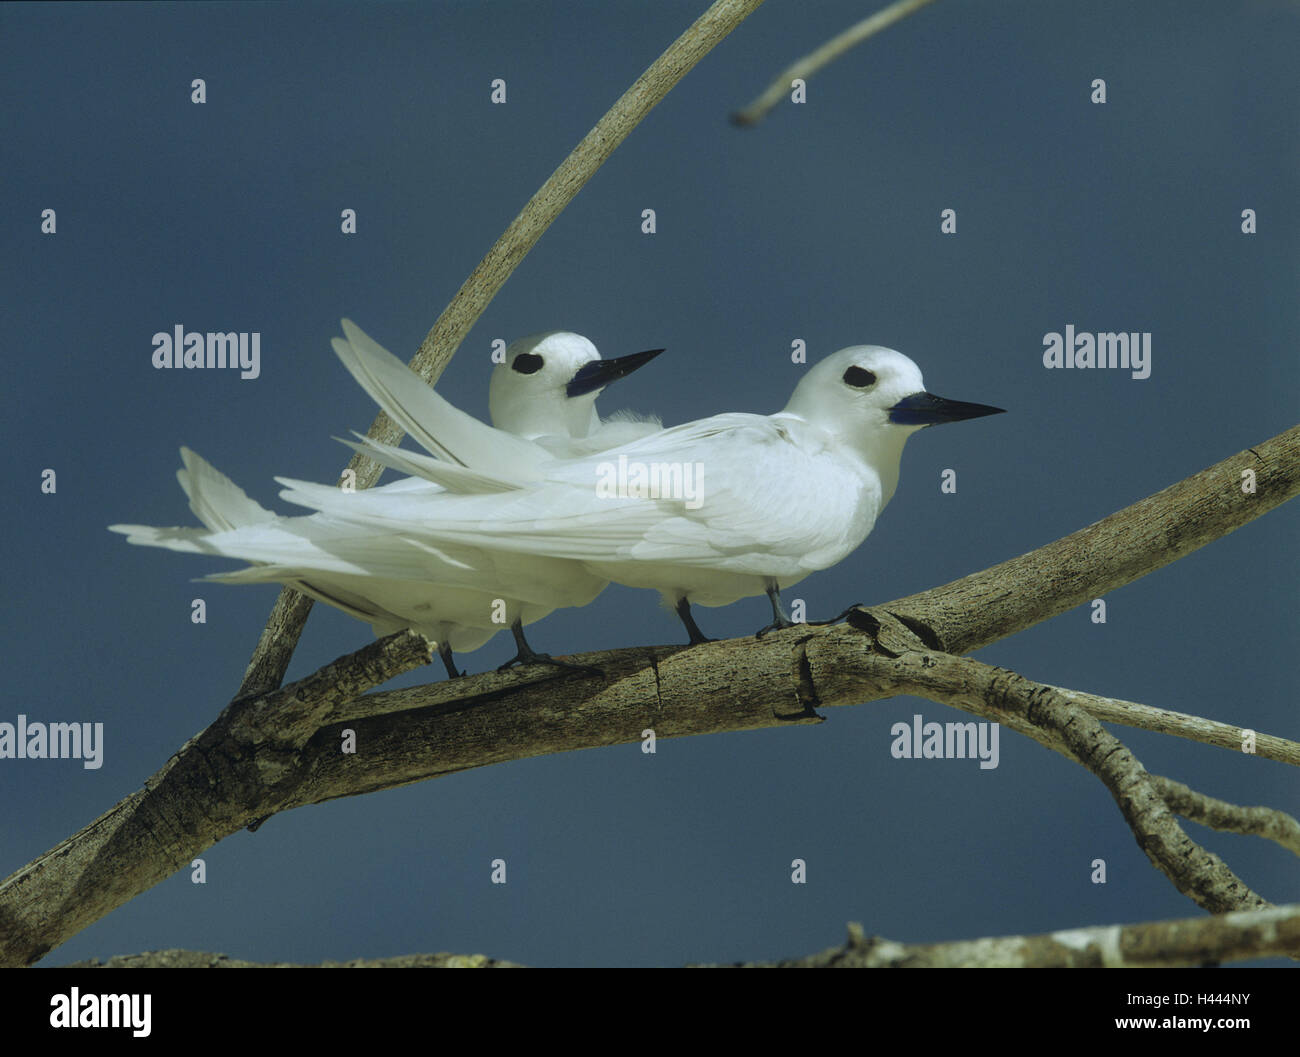 Forks, fairy terns, Gygis alb, birds, animals, terns, deliberate dives, the Seychelles, plumage, white, branches, - Stock Image